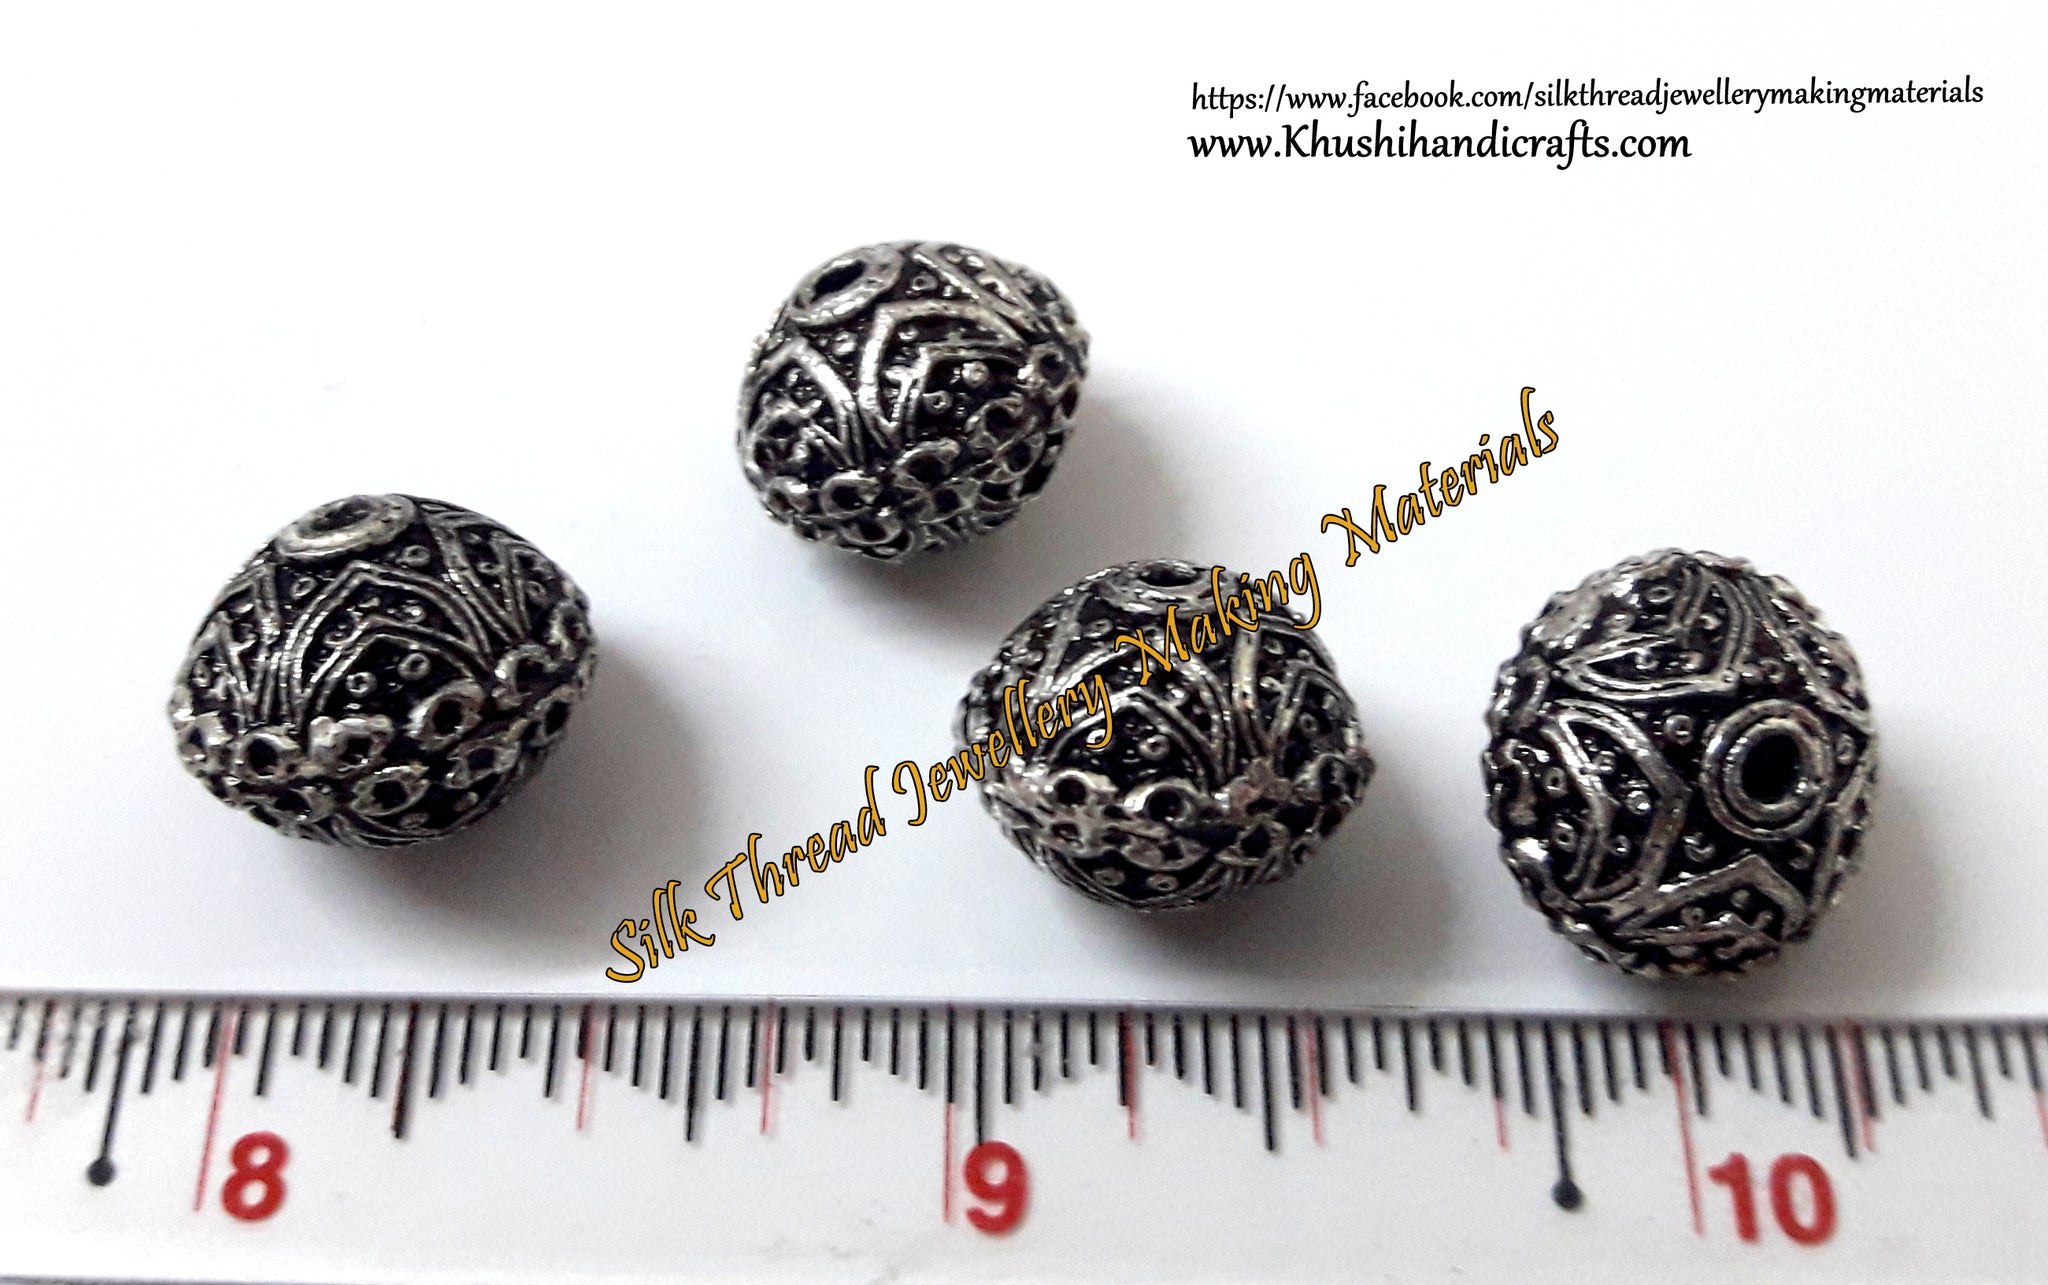 Round German Silver beads